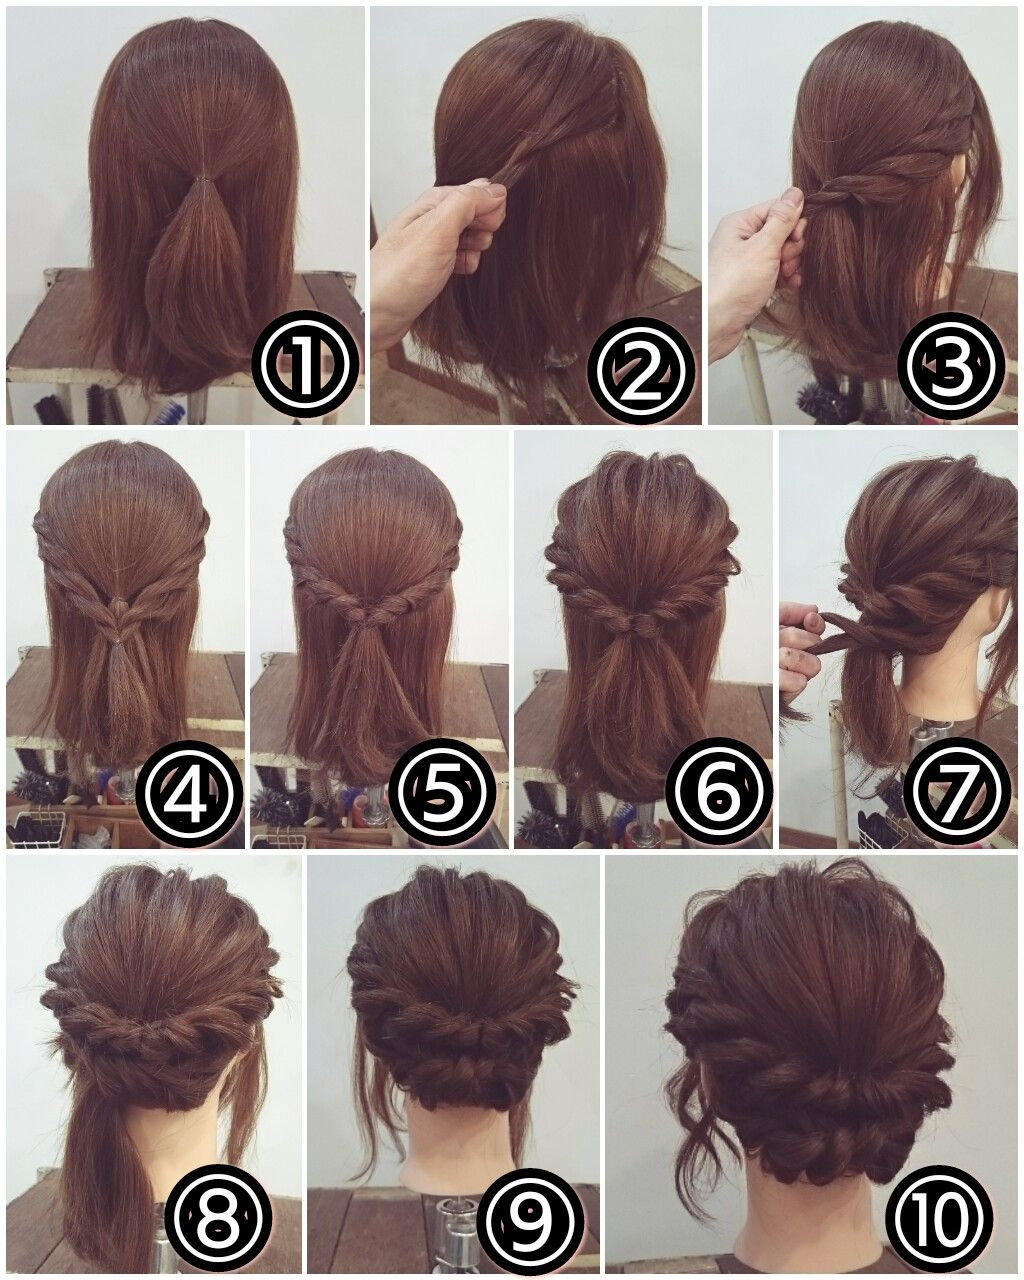 Pin by Яна Чернакова on Женская мода in pinterest hair